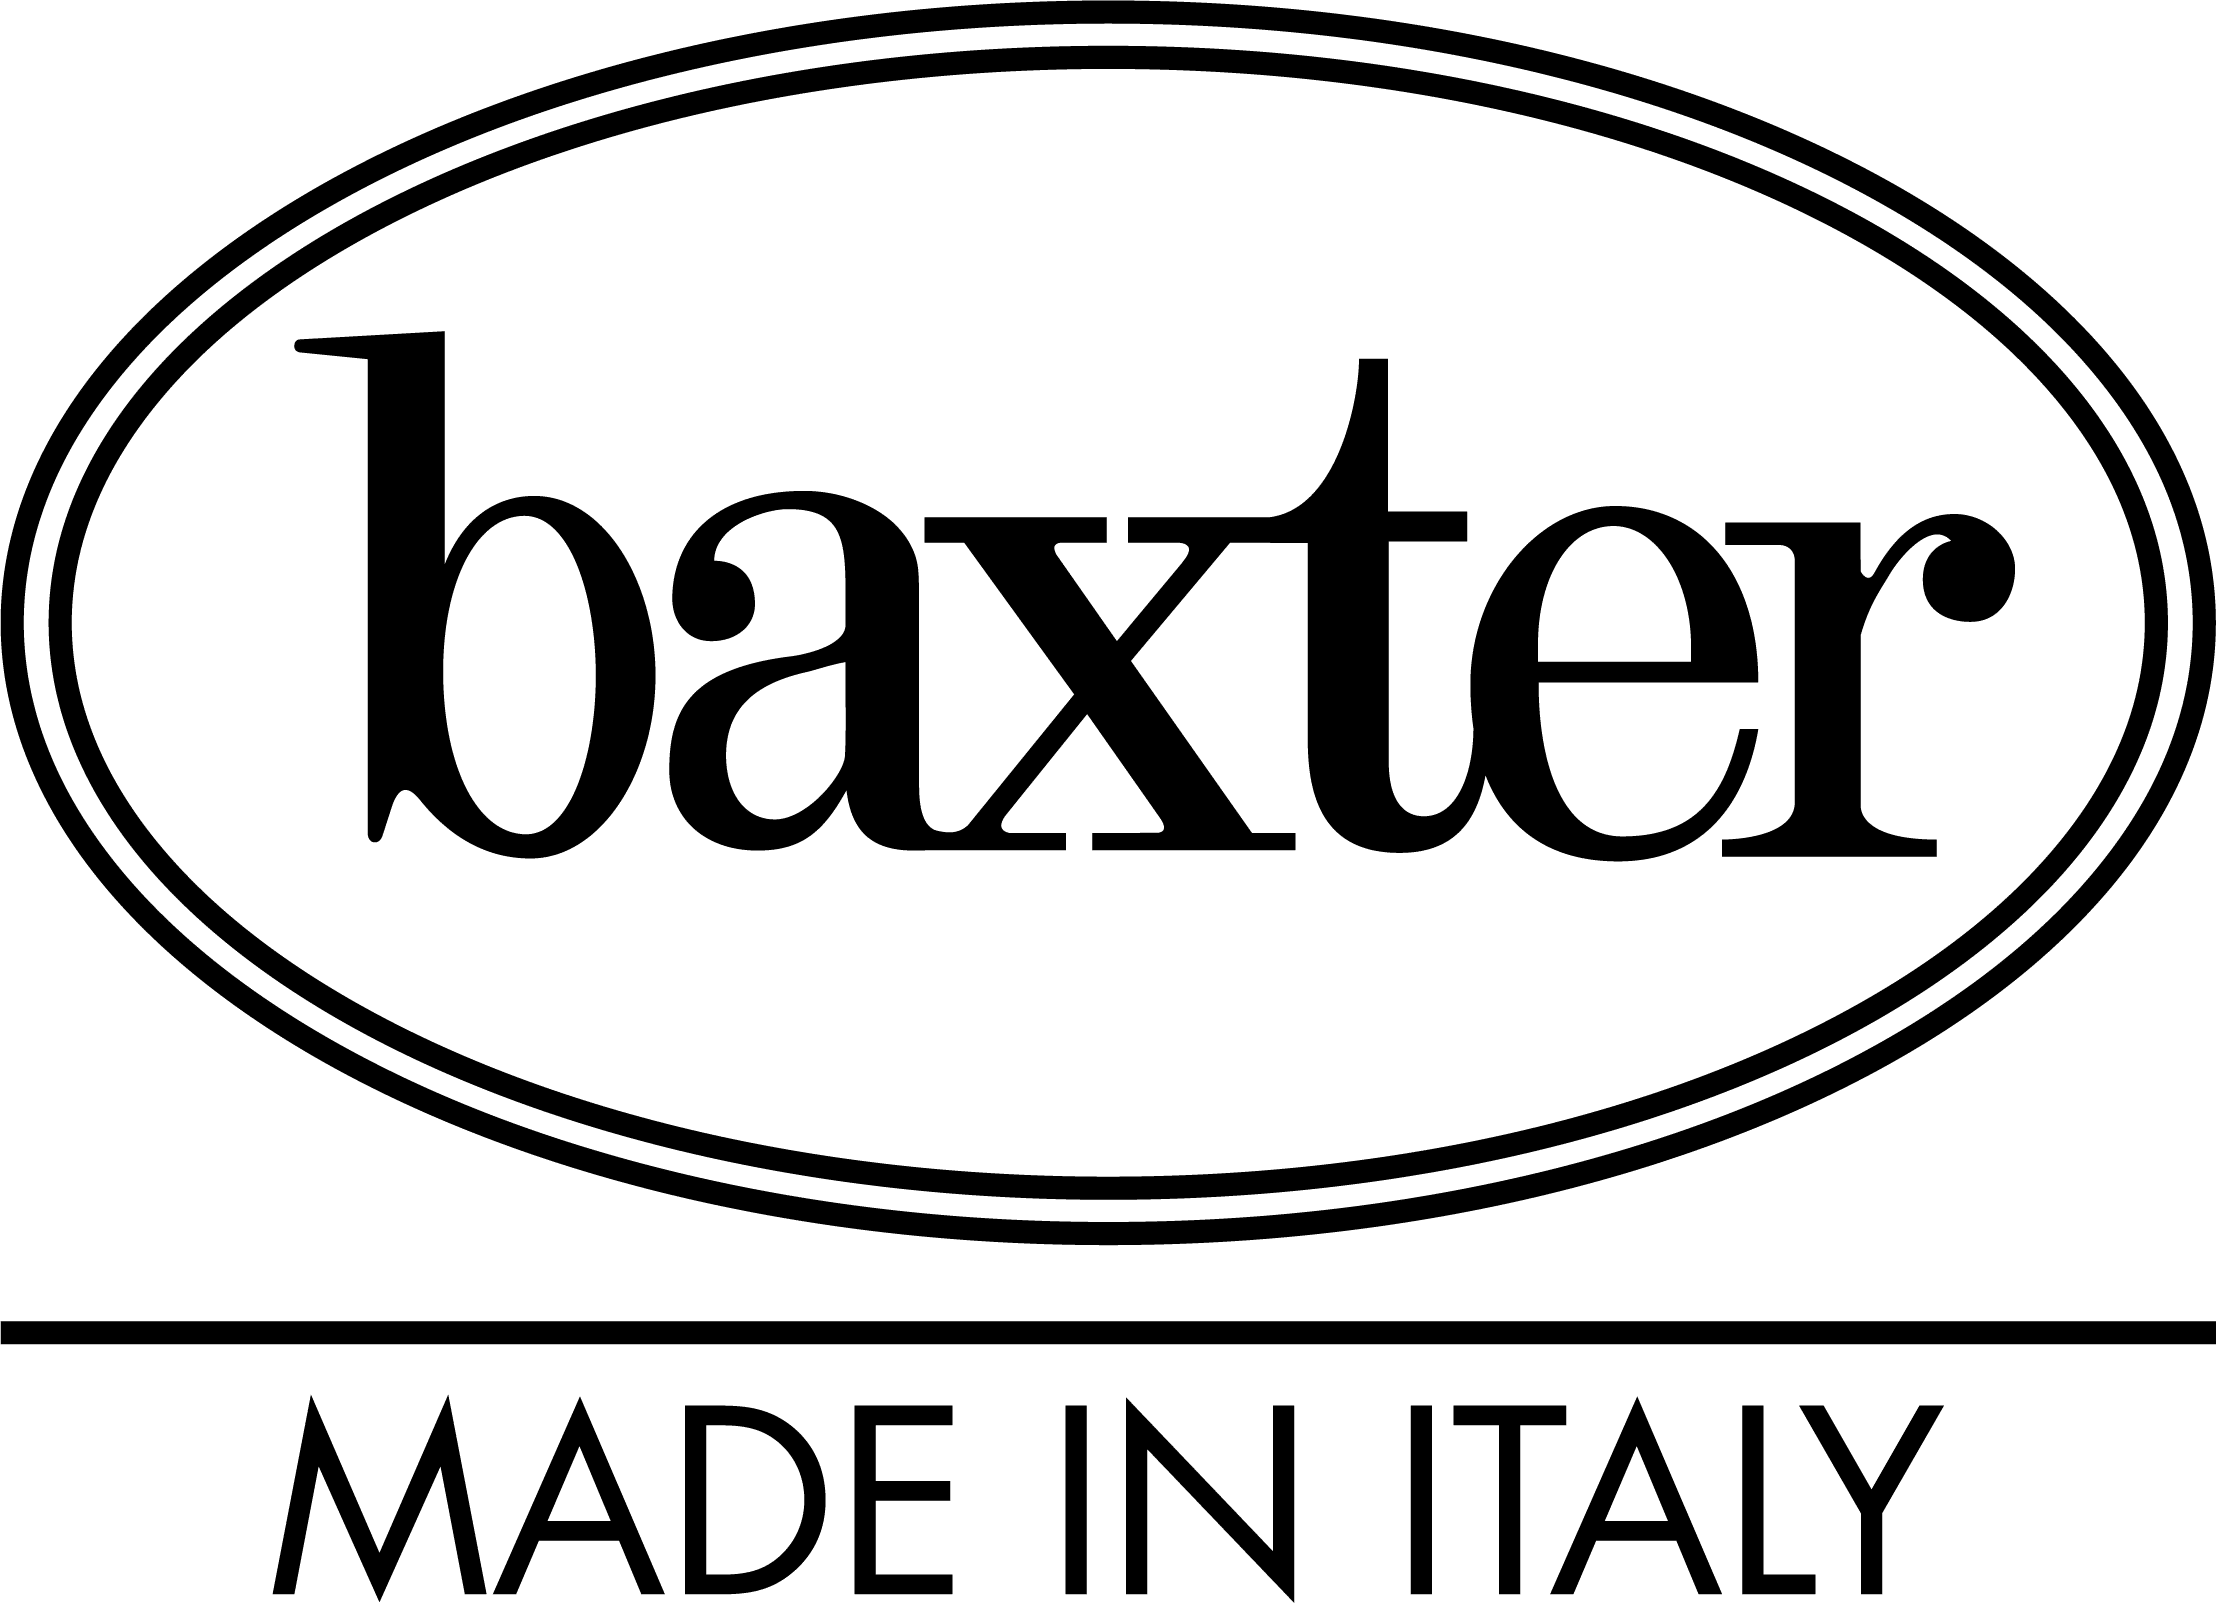 Logo Baxter made in Italy